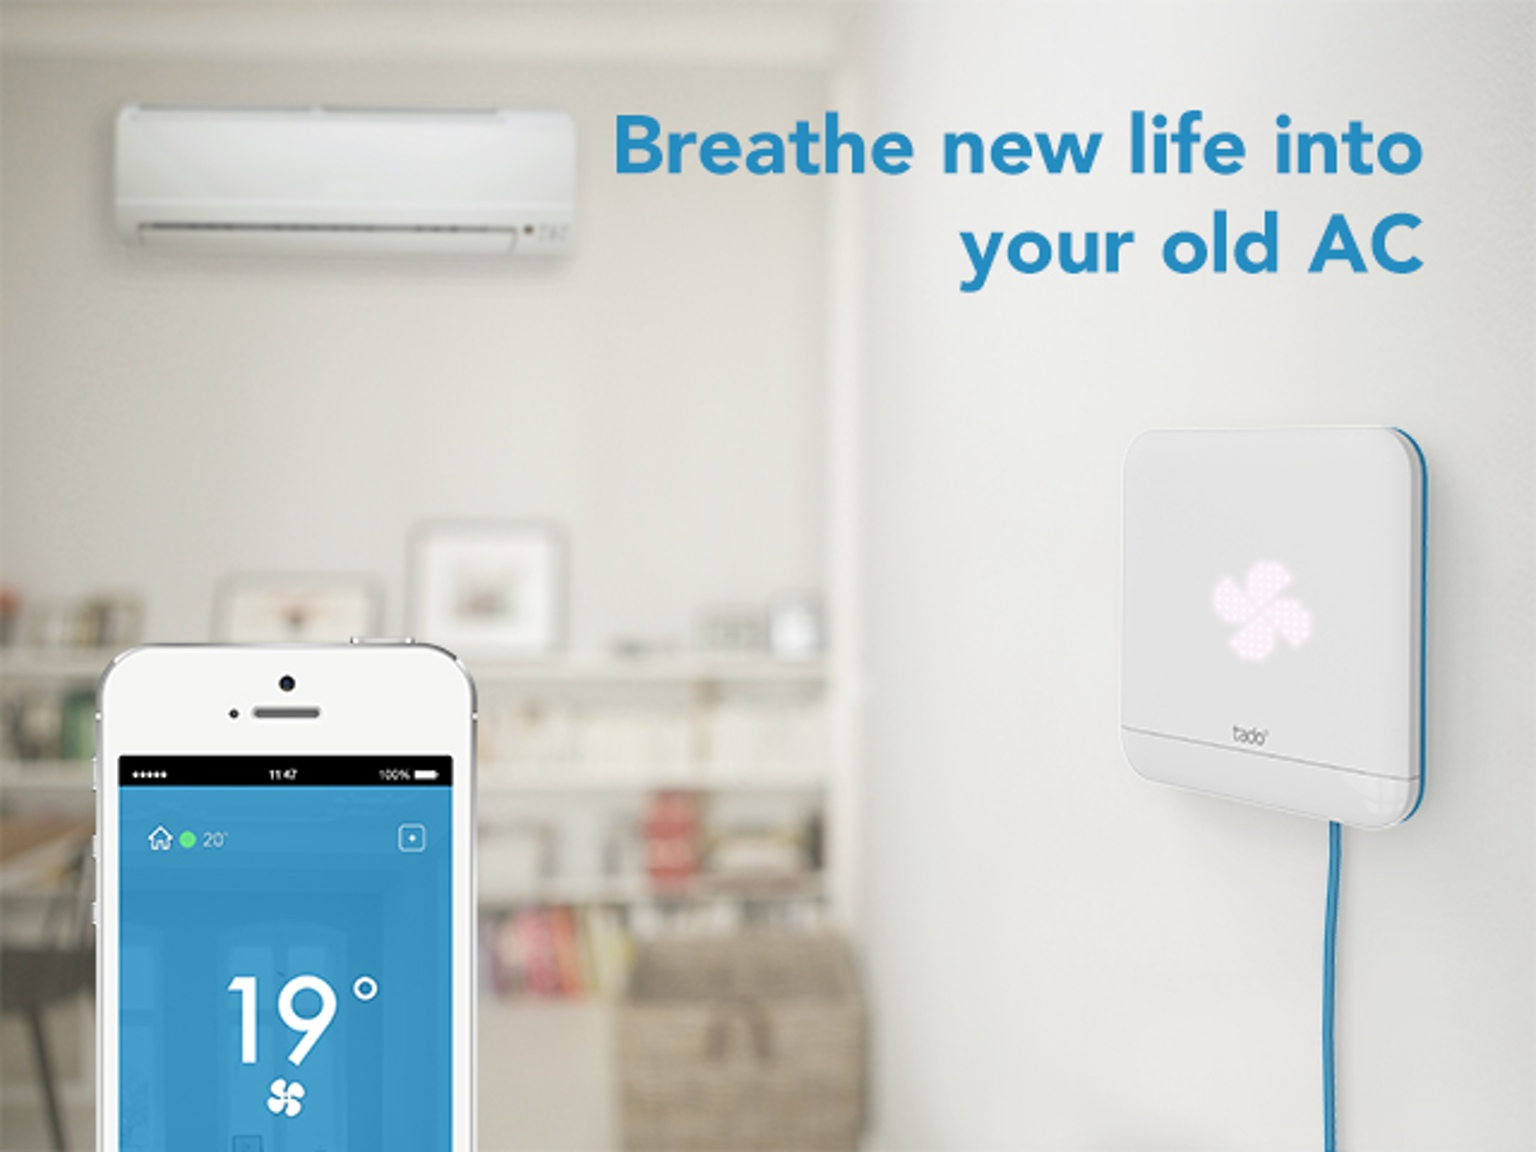 Breathe New Life Into Your Old AC- tado° Smart AC Control